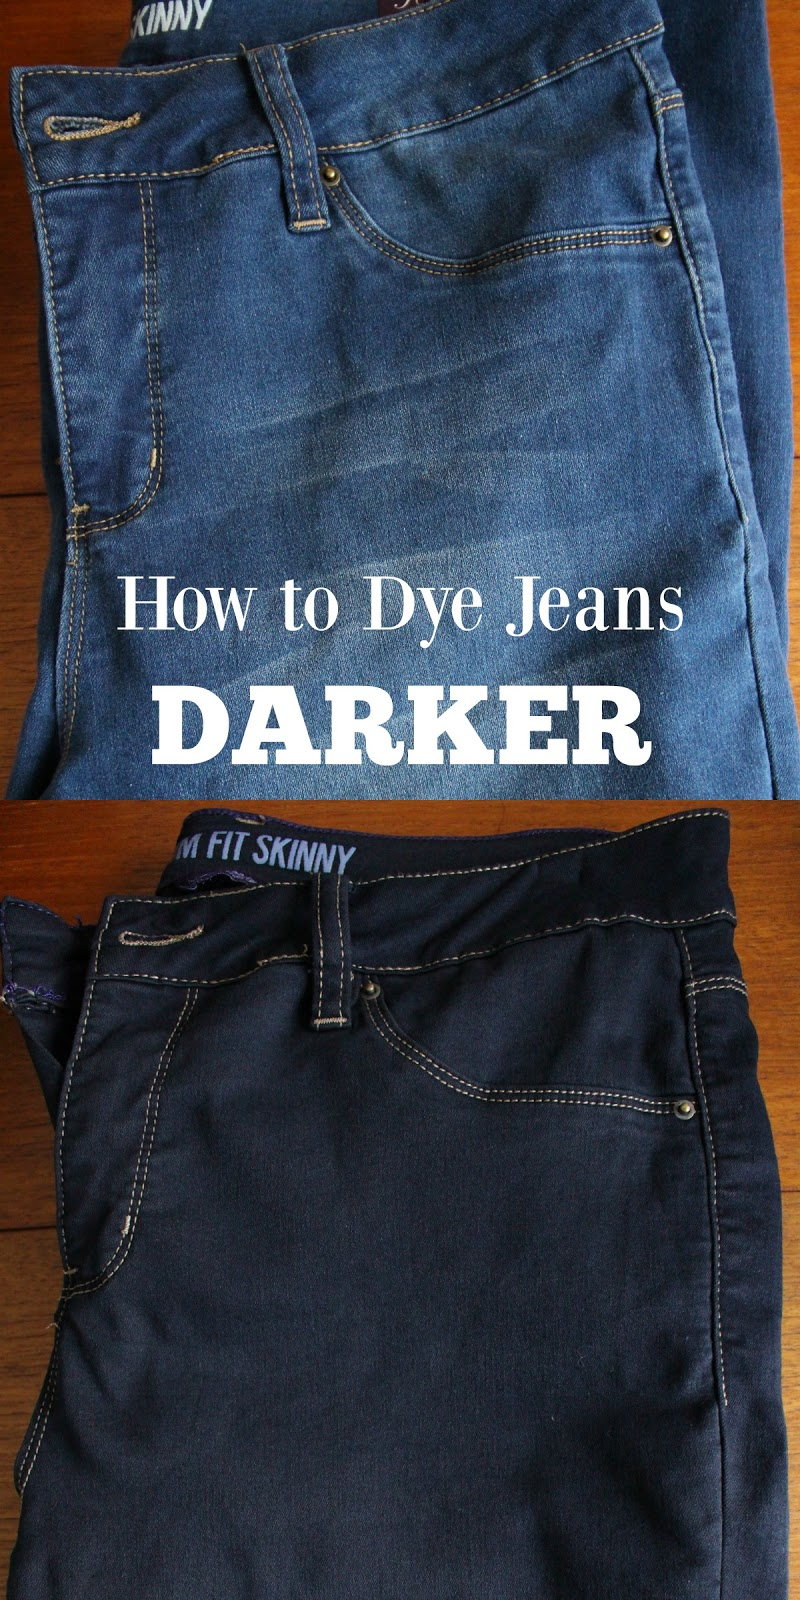 How to dye jeans darker